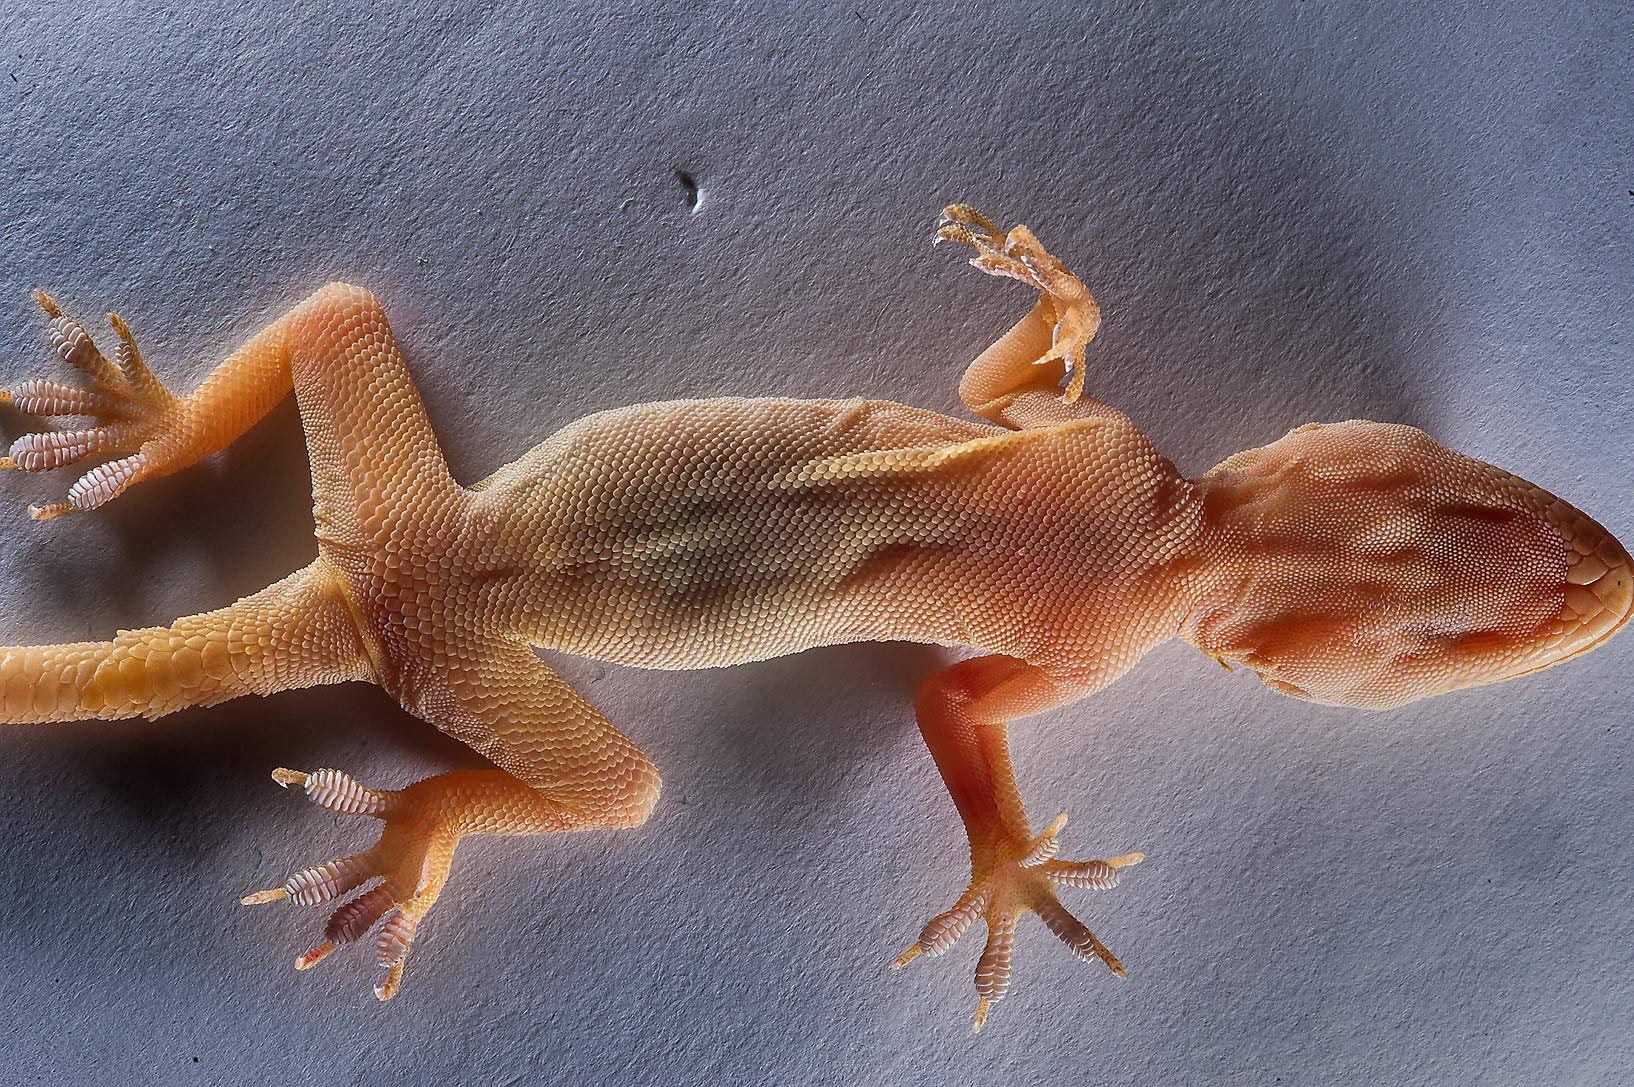 Ventral view of yellow-bellied House Gecko (Hemidactylus flaviviridis). Qatar